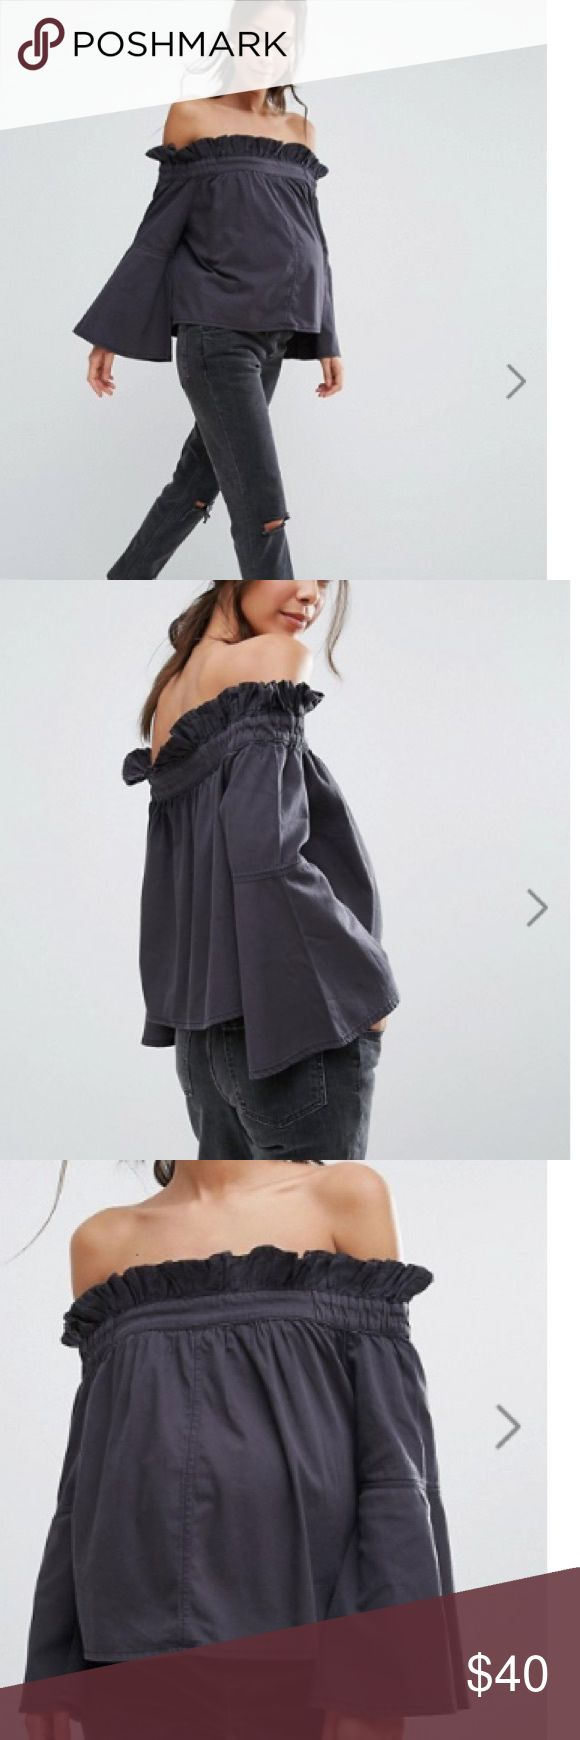 NWT maternity Denim off shoulder  top size 4 Gorgeous maternity top. Fit through all stages of pregnancy 👌. Flattered sleeves . If you love fashion this is for you 👌 100 %cotton . Super comfy and you will look fabulous 👌 ASOS Maternity Tops Crop Tops